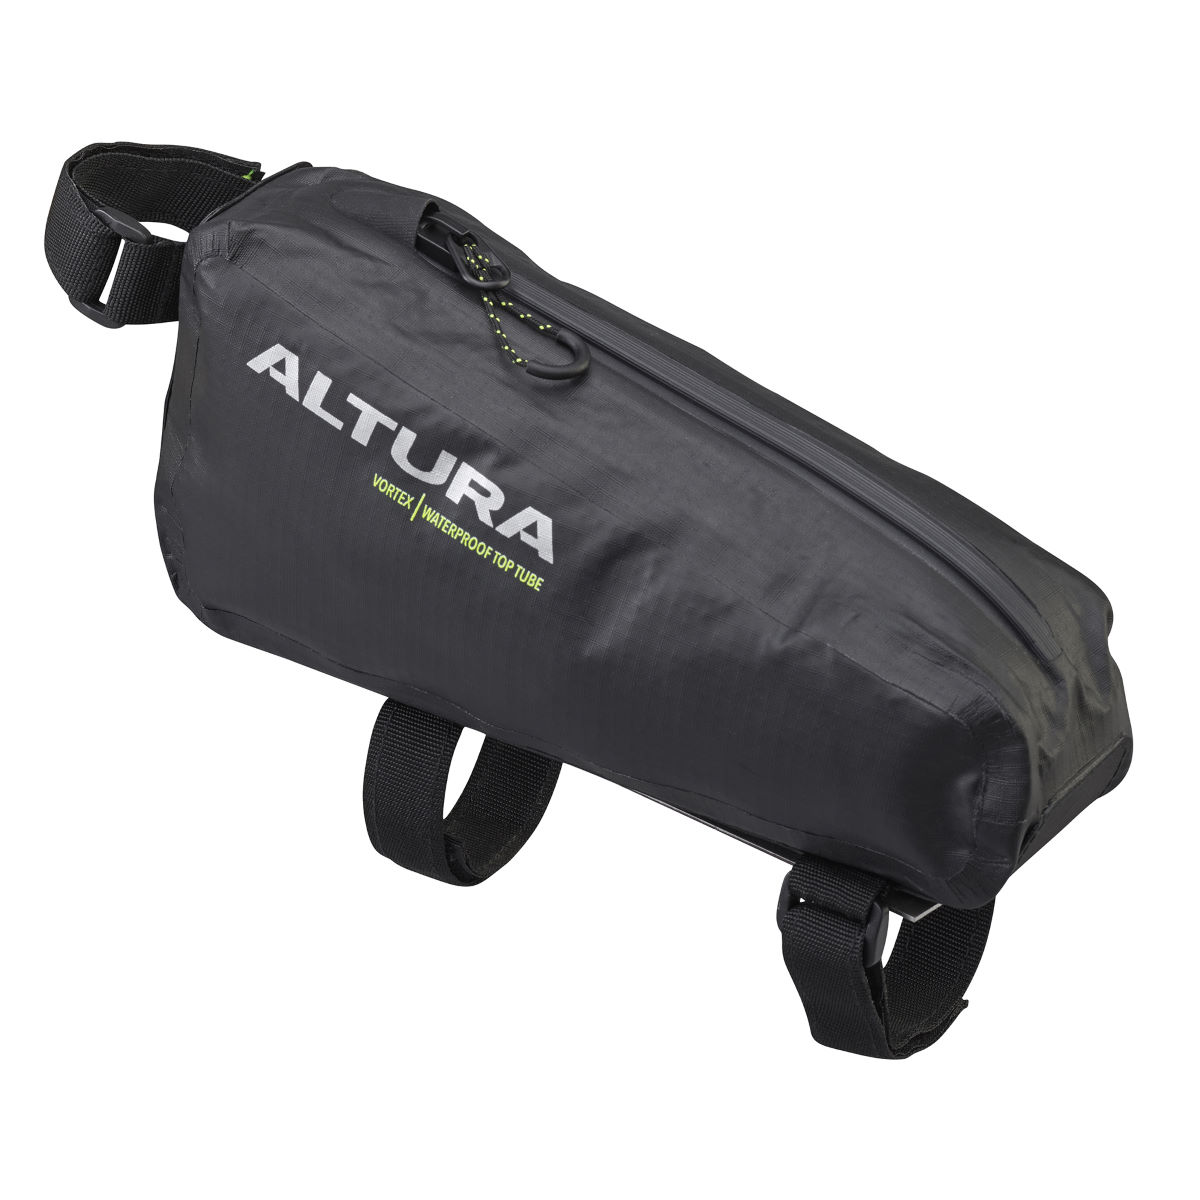 Altura - Vortex Waterproof Top Tube - Taille unique Noir